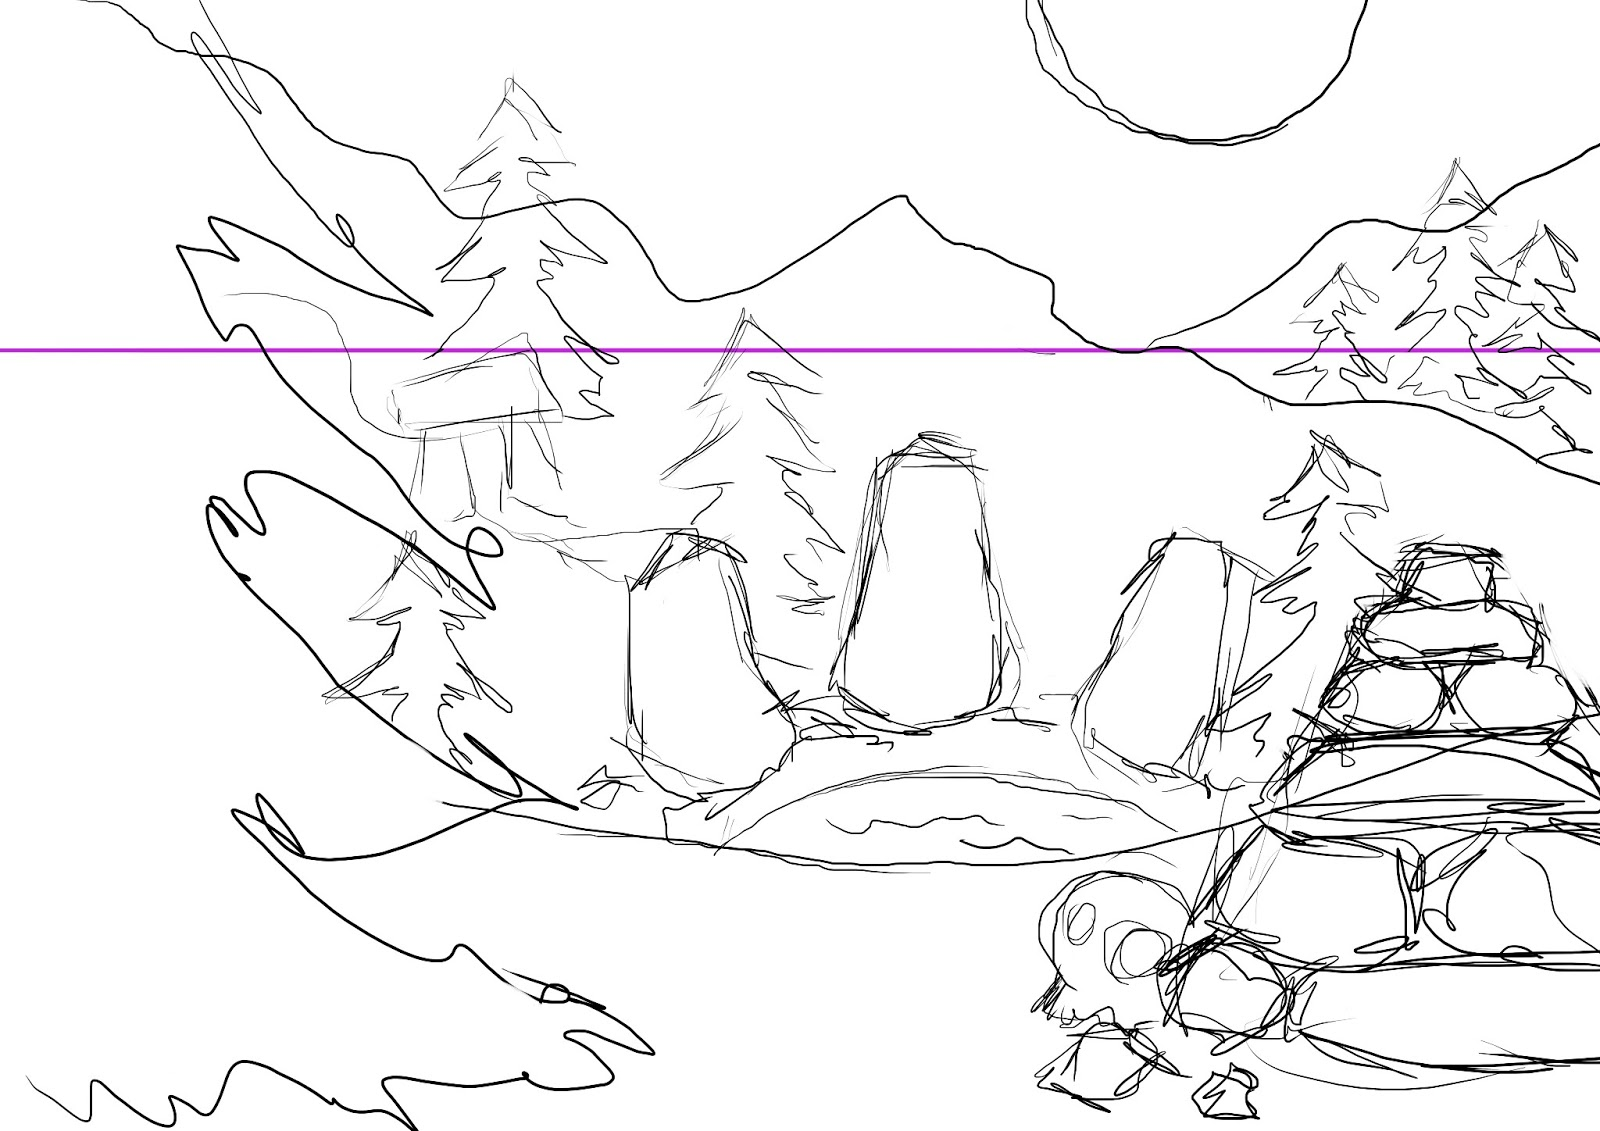 1600x1131 Drawing For Games 2 Environment Concept Art Process Drawing